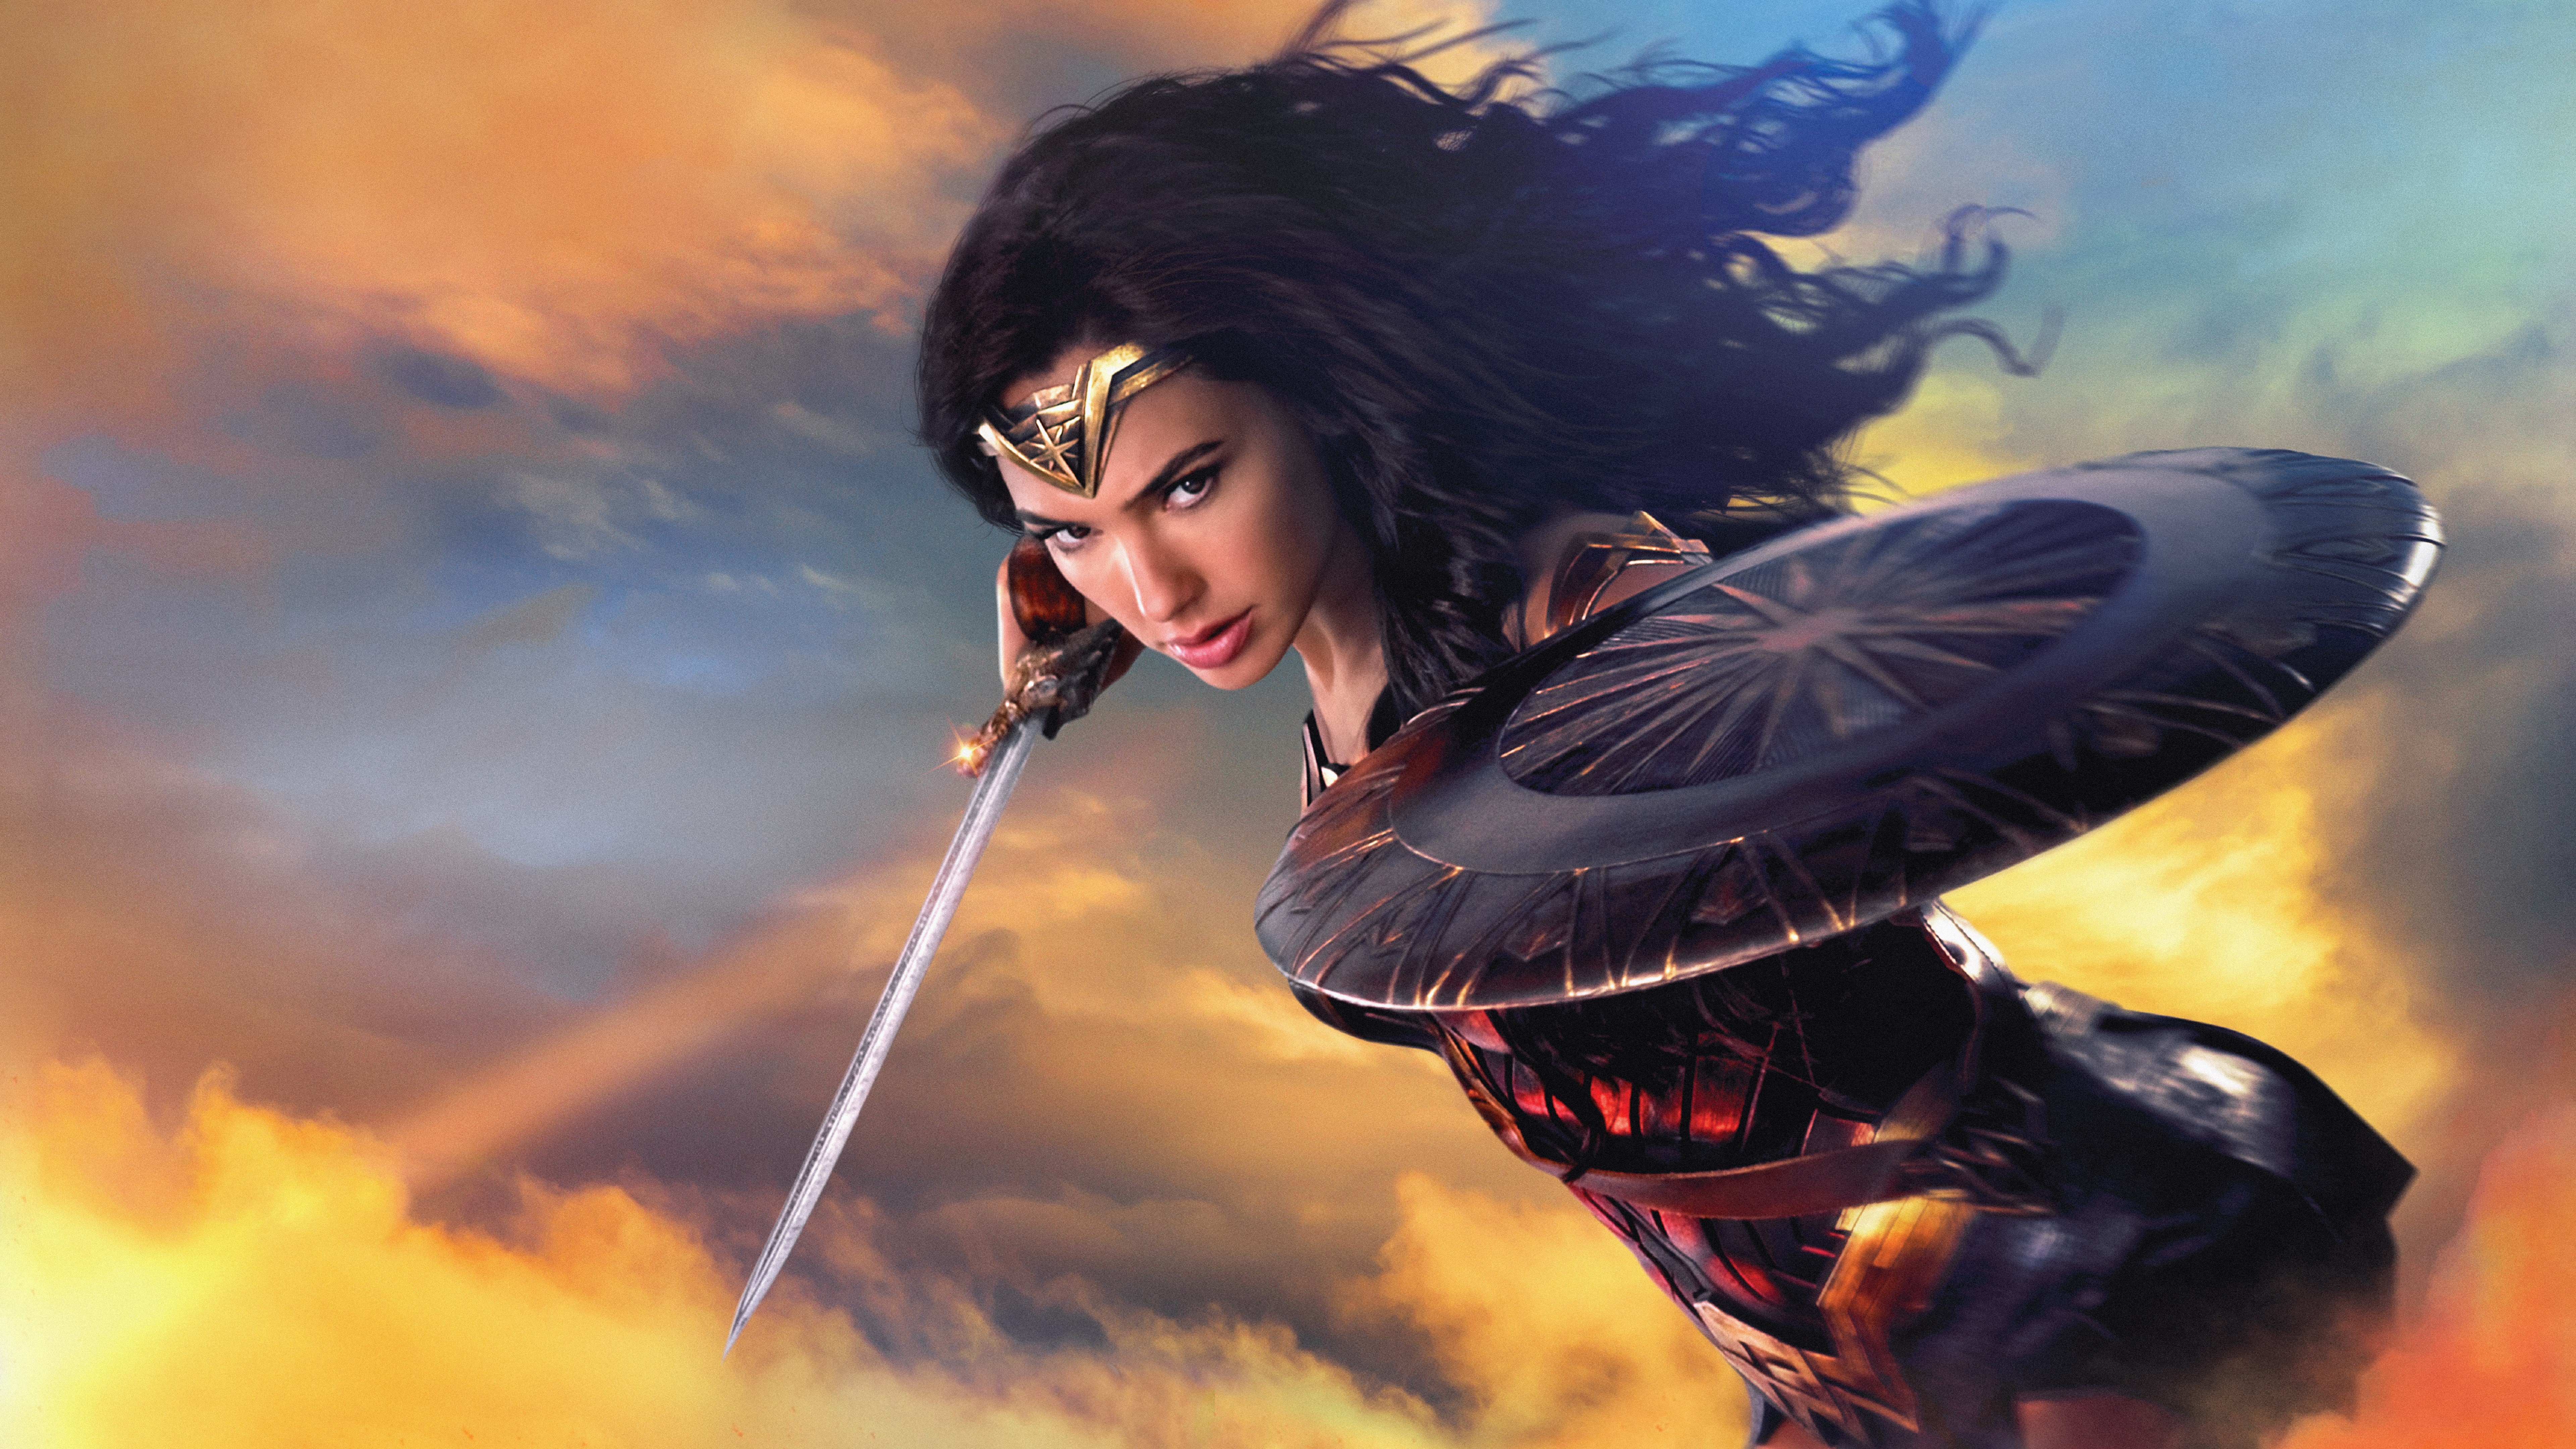 Wonder Wallpapers Photos And Desktop Backgrounds Up To 8k